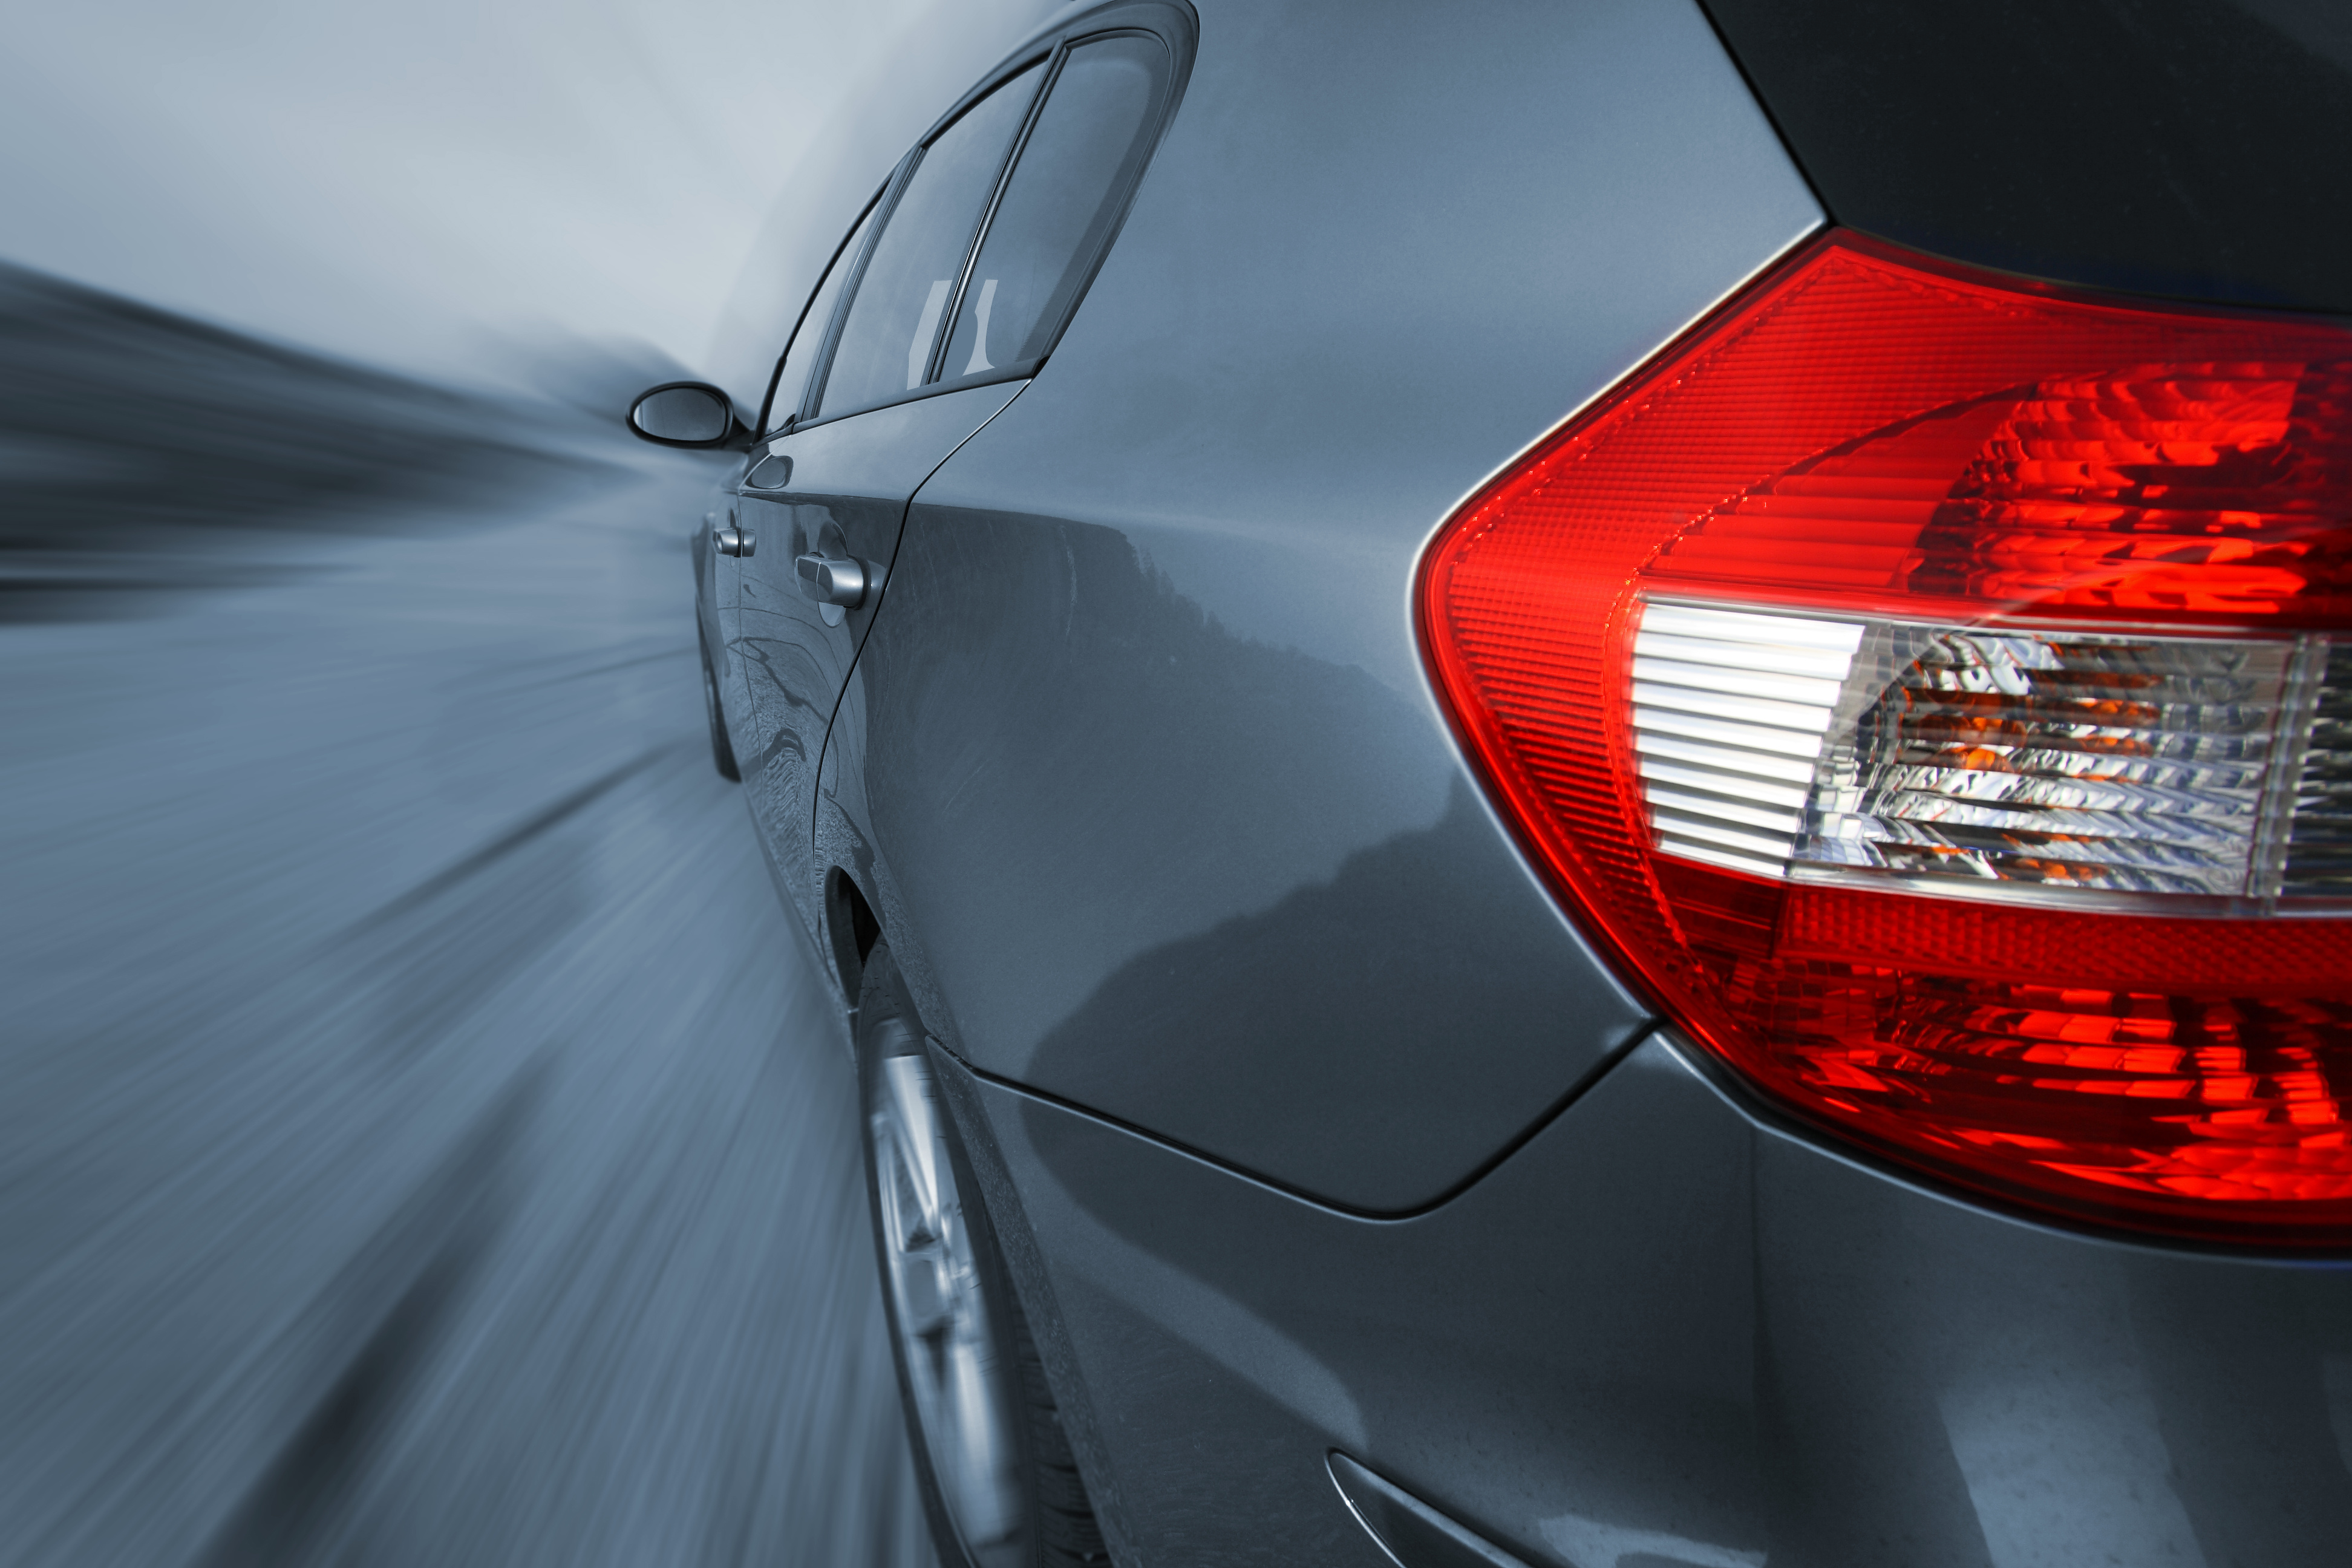 close up of a tail light on a luxury car